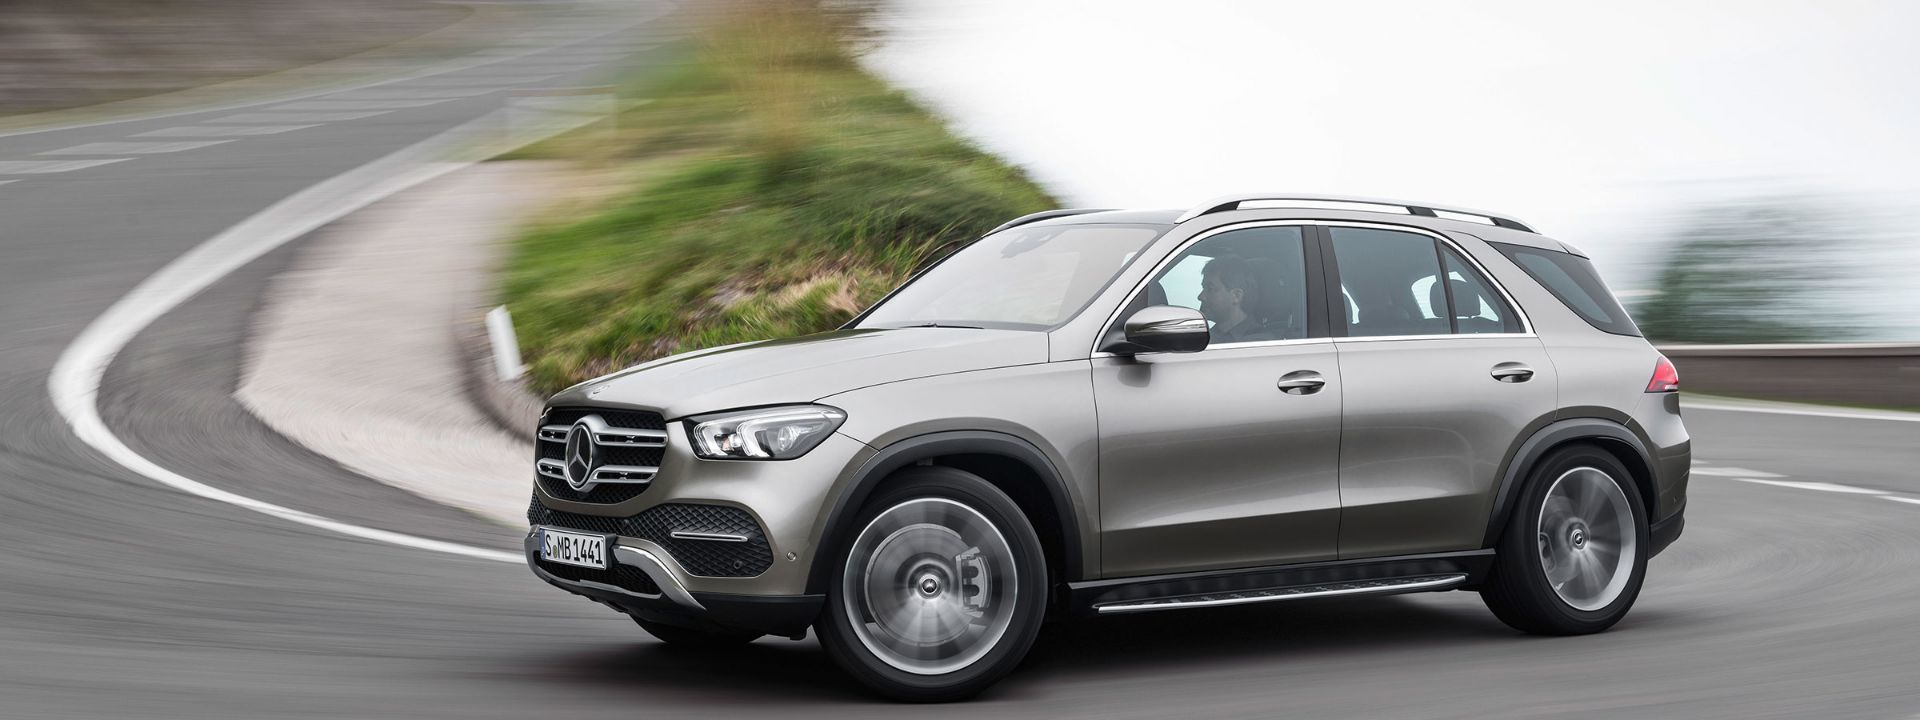 2020 Mercedes-Benz GLE.